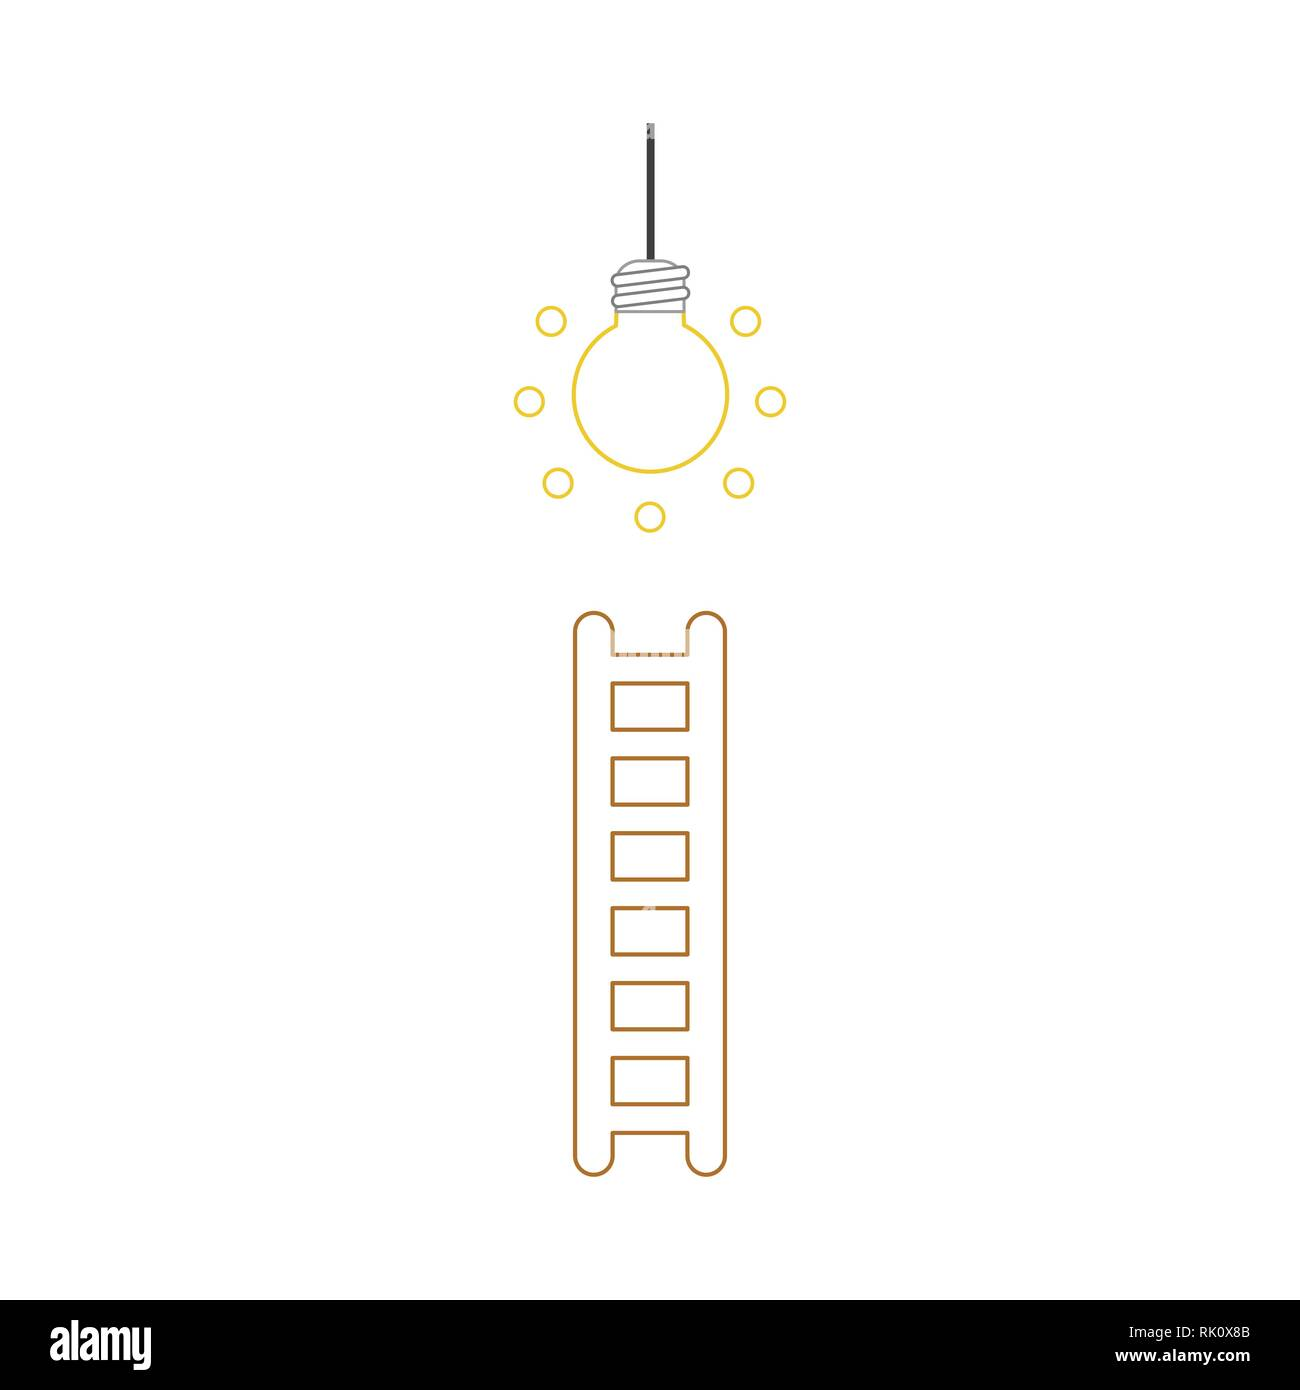 6816d632f Flat design style vector illustration concept of climb to glowing light  bulb with wooden ladder symbol